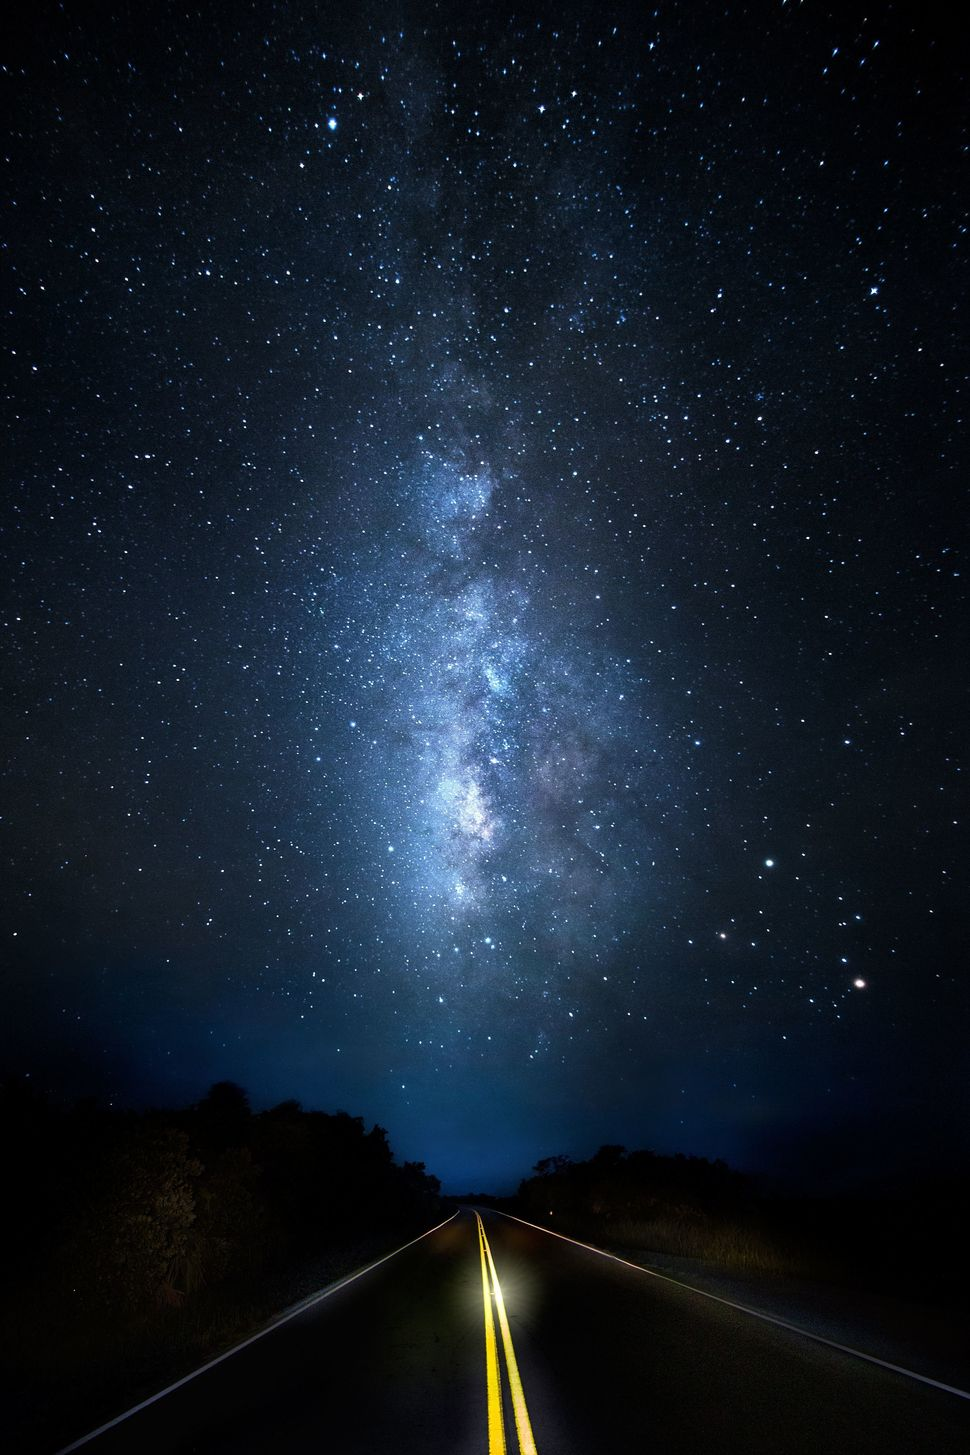 The Milky Way seems to be the ultimate destination on this rural country road.